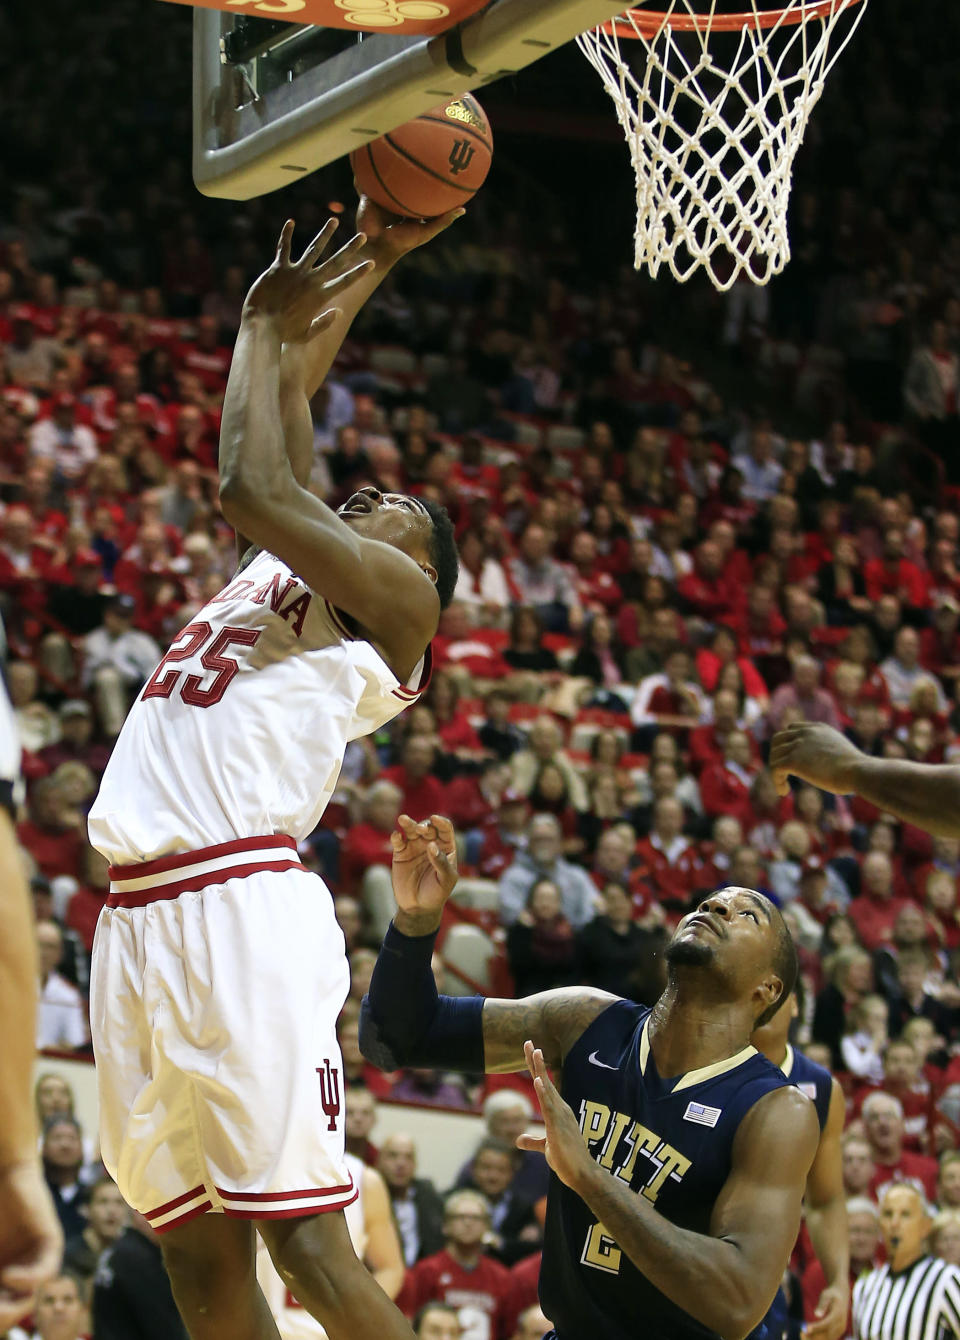 Indiana's Emmitt Holt (25) puts up a shot against Pittsburgh's Michael Young (2) during the second half of an NCAA college basketball game Tuesday, Dec. 2, 2014, in Bloomington, Ind. Indiana won 81-69. (AP Photo/Darron Cummings)